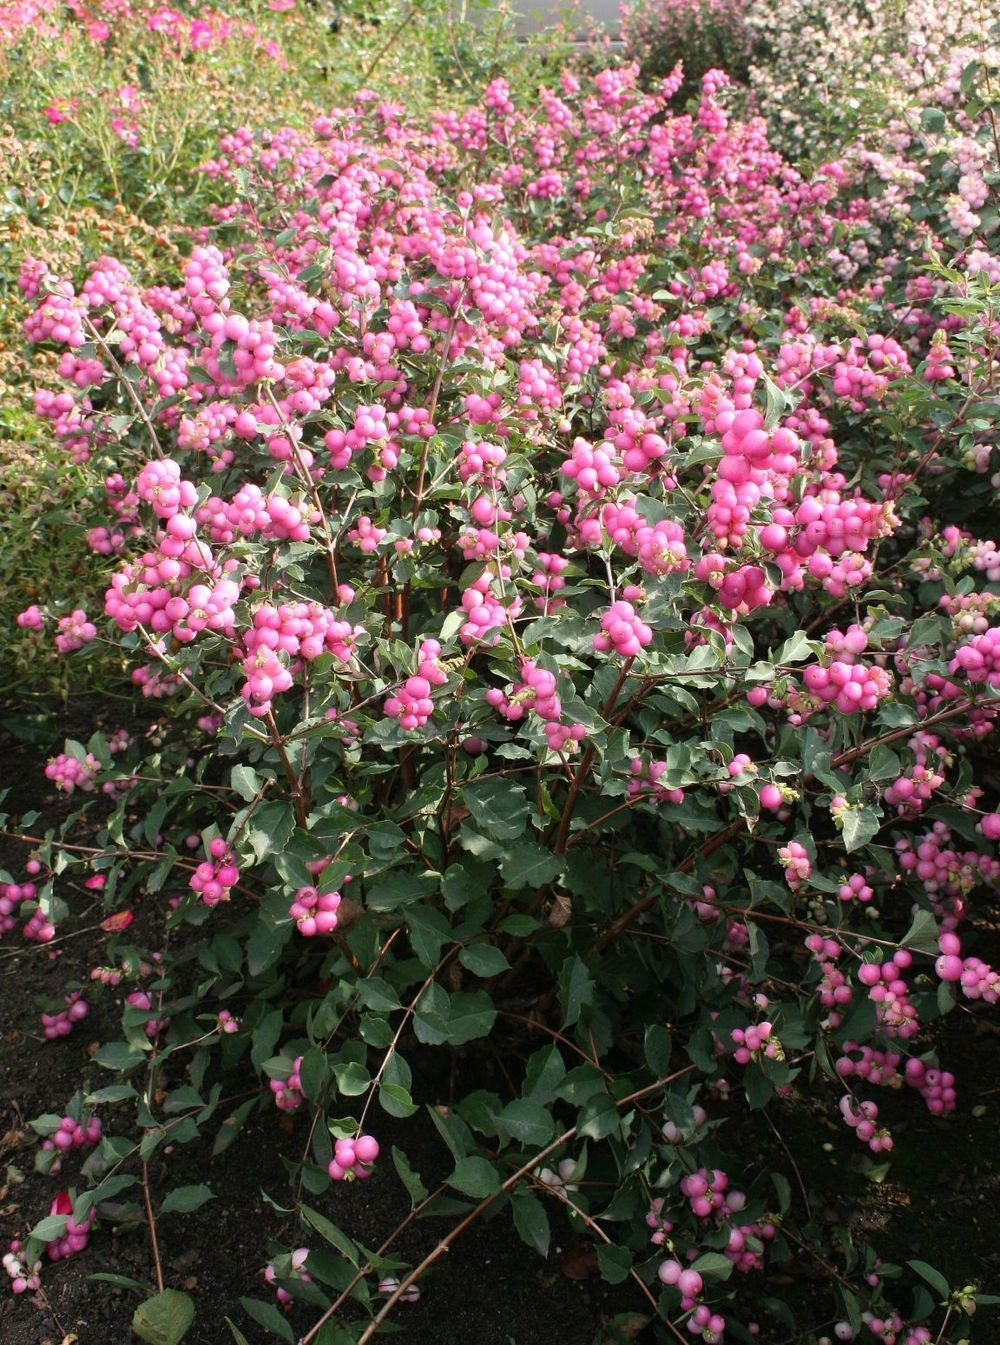 Snowberry Candy Coralberry Plump Candy Pink Berries Ripen In Early Fall As The Last Of Summers Small Pink Flowe Trees And Shrubs Small Pink Flowers Plants